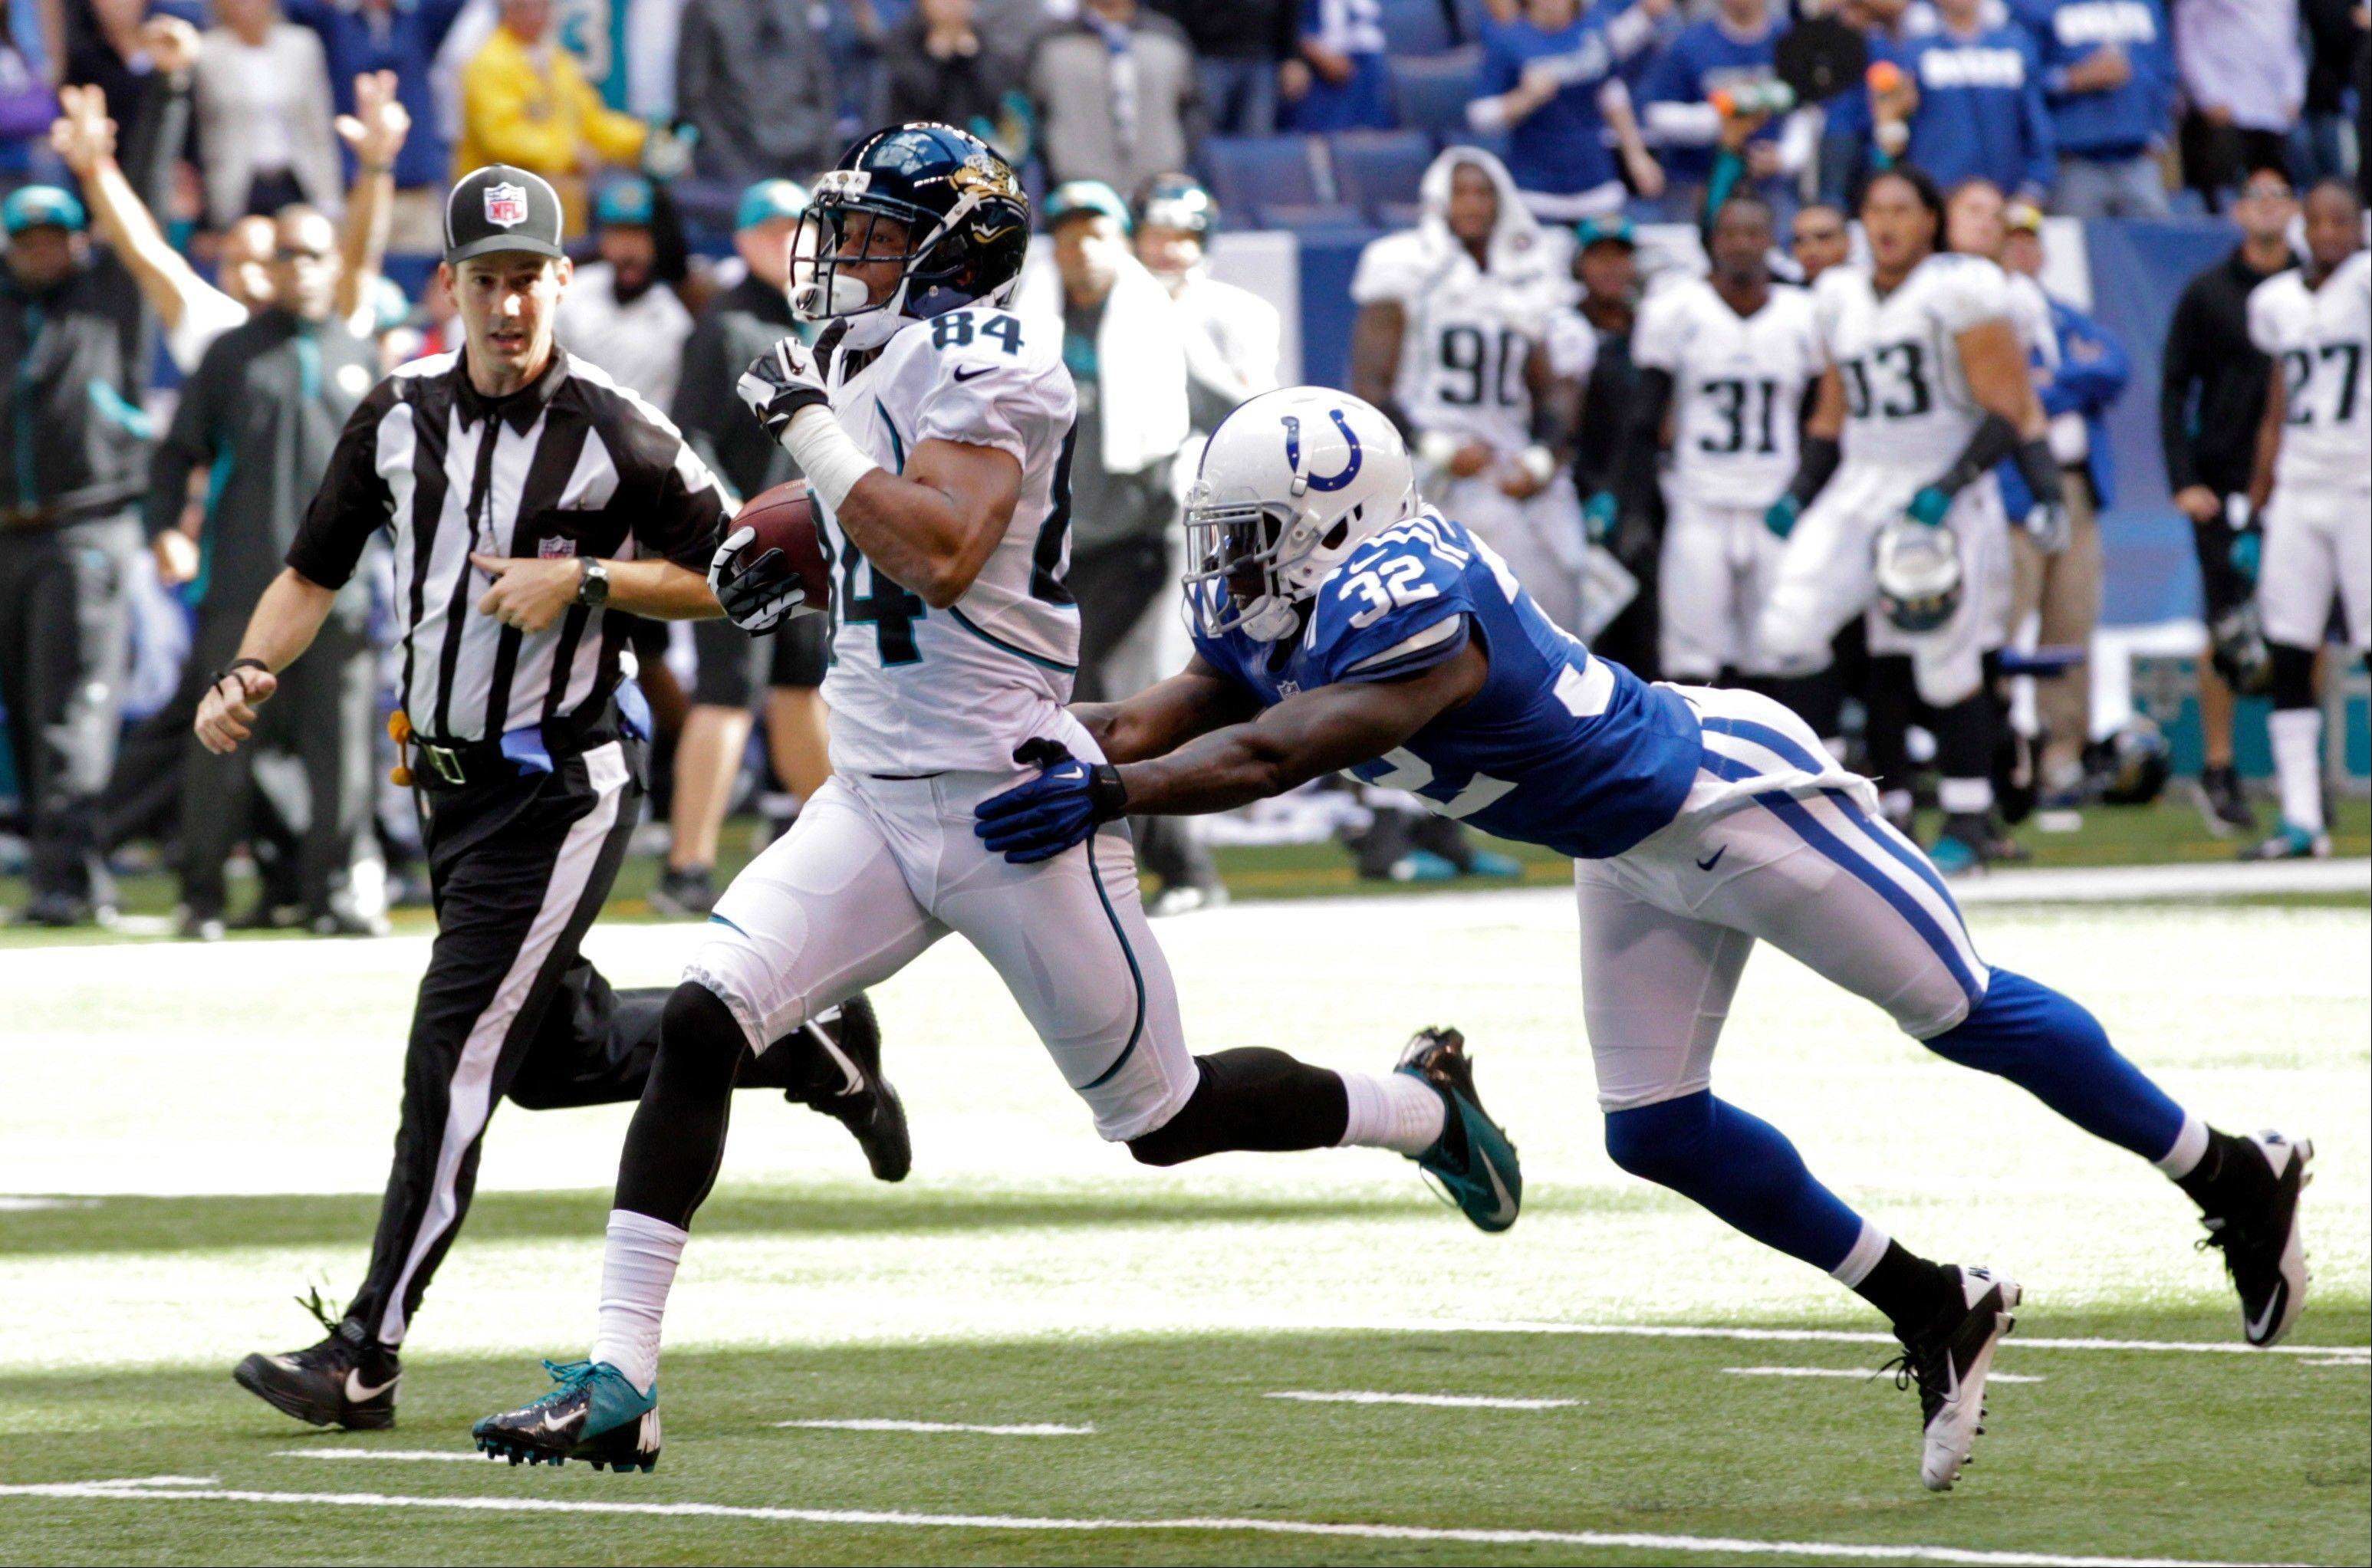 Jacksonville Jaguars wide receiver Cecil Shorts breaks the tackle of Indianapolis Colts defensive back Cassius Vaughn on his way to 80-yard touchdown in the final minute of Sunday's game in Indianapolis.